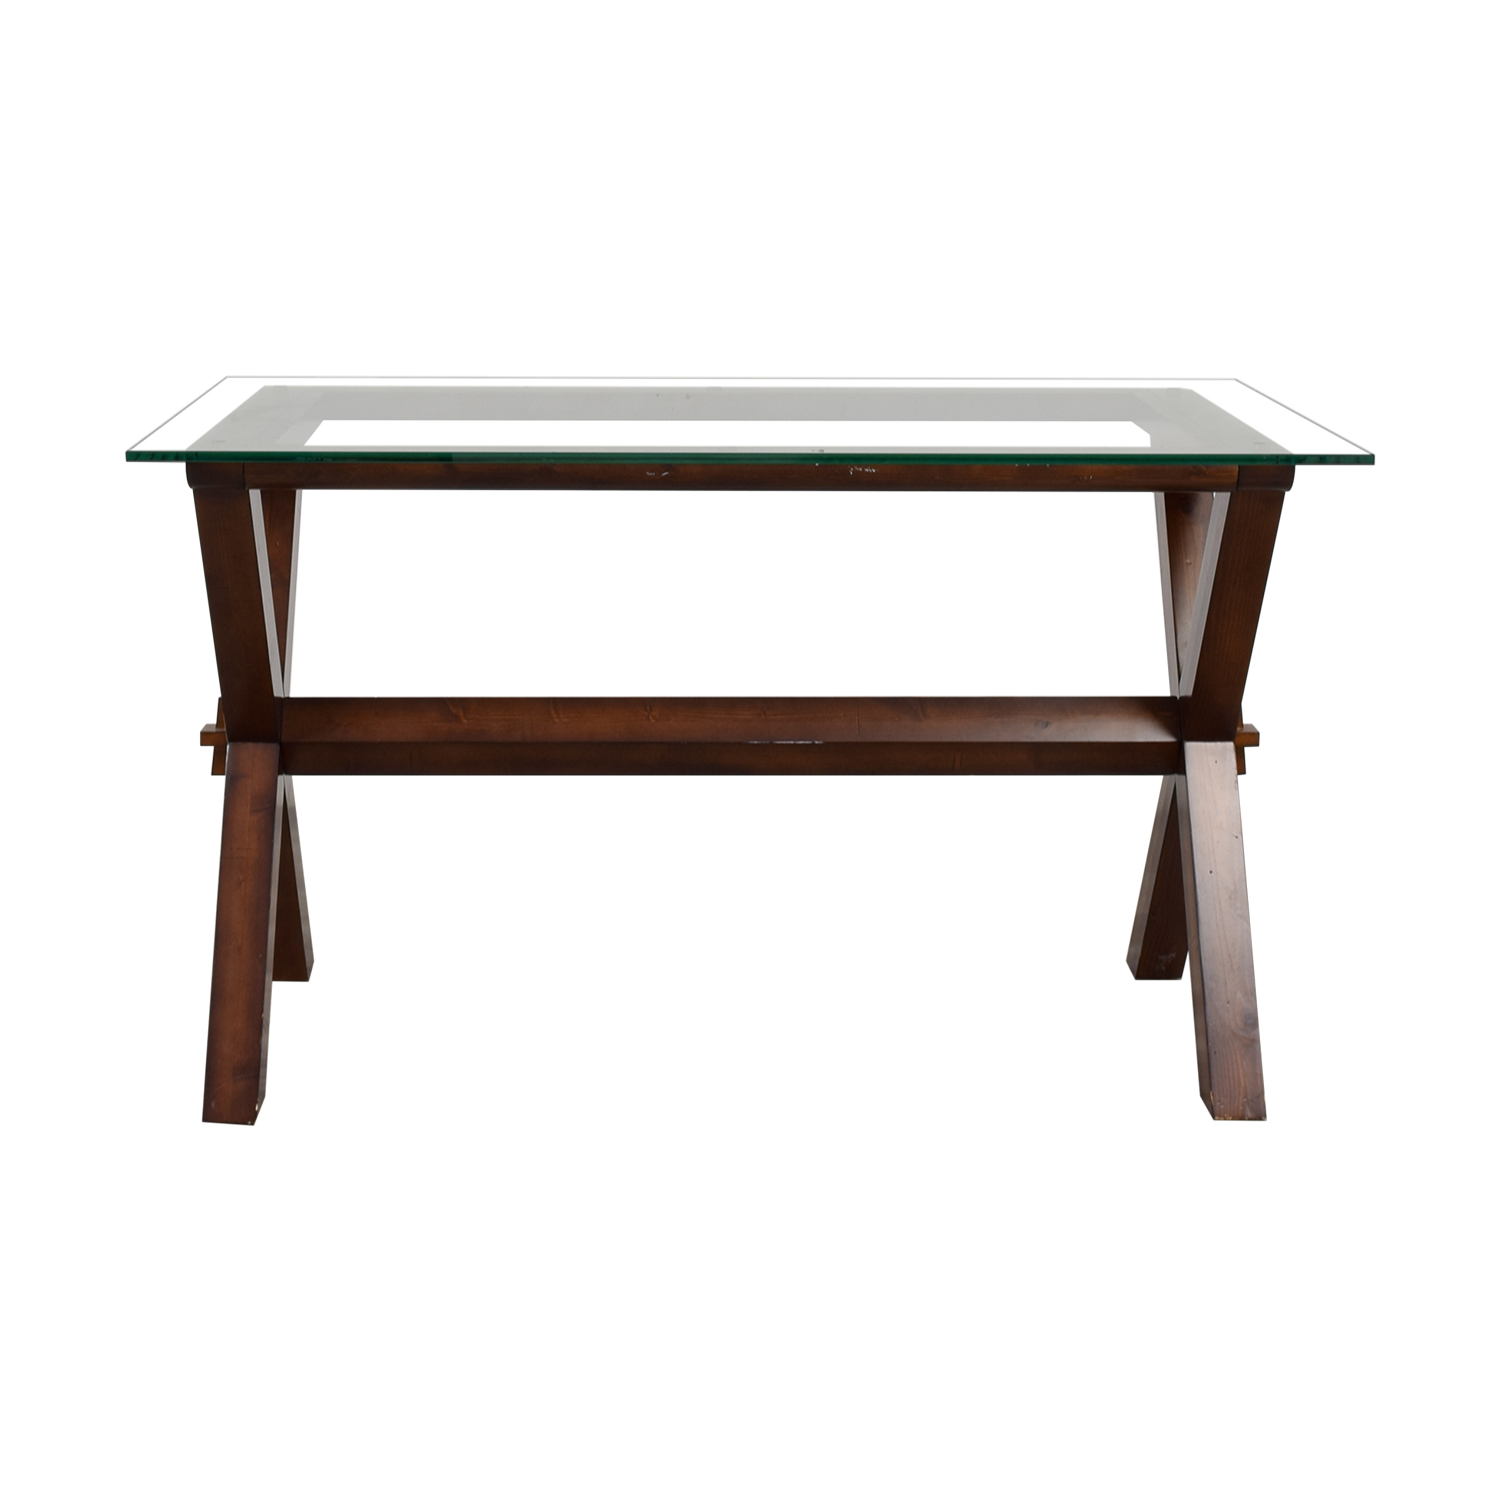 Pottery Barn Pottery Barn Glass and Wood Desk price